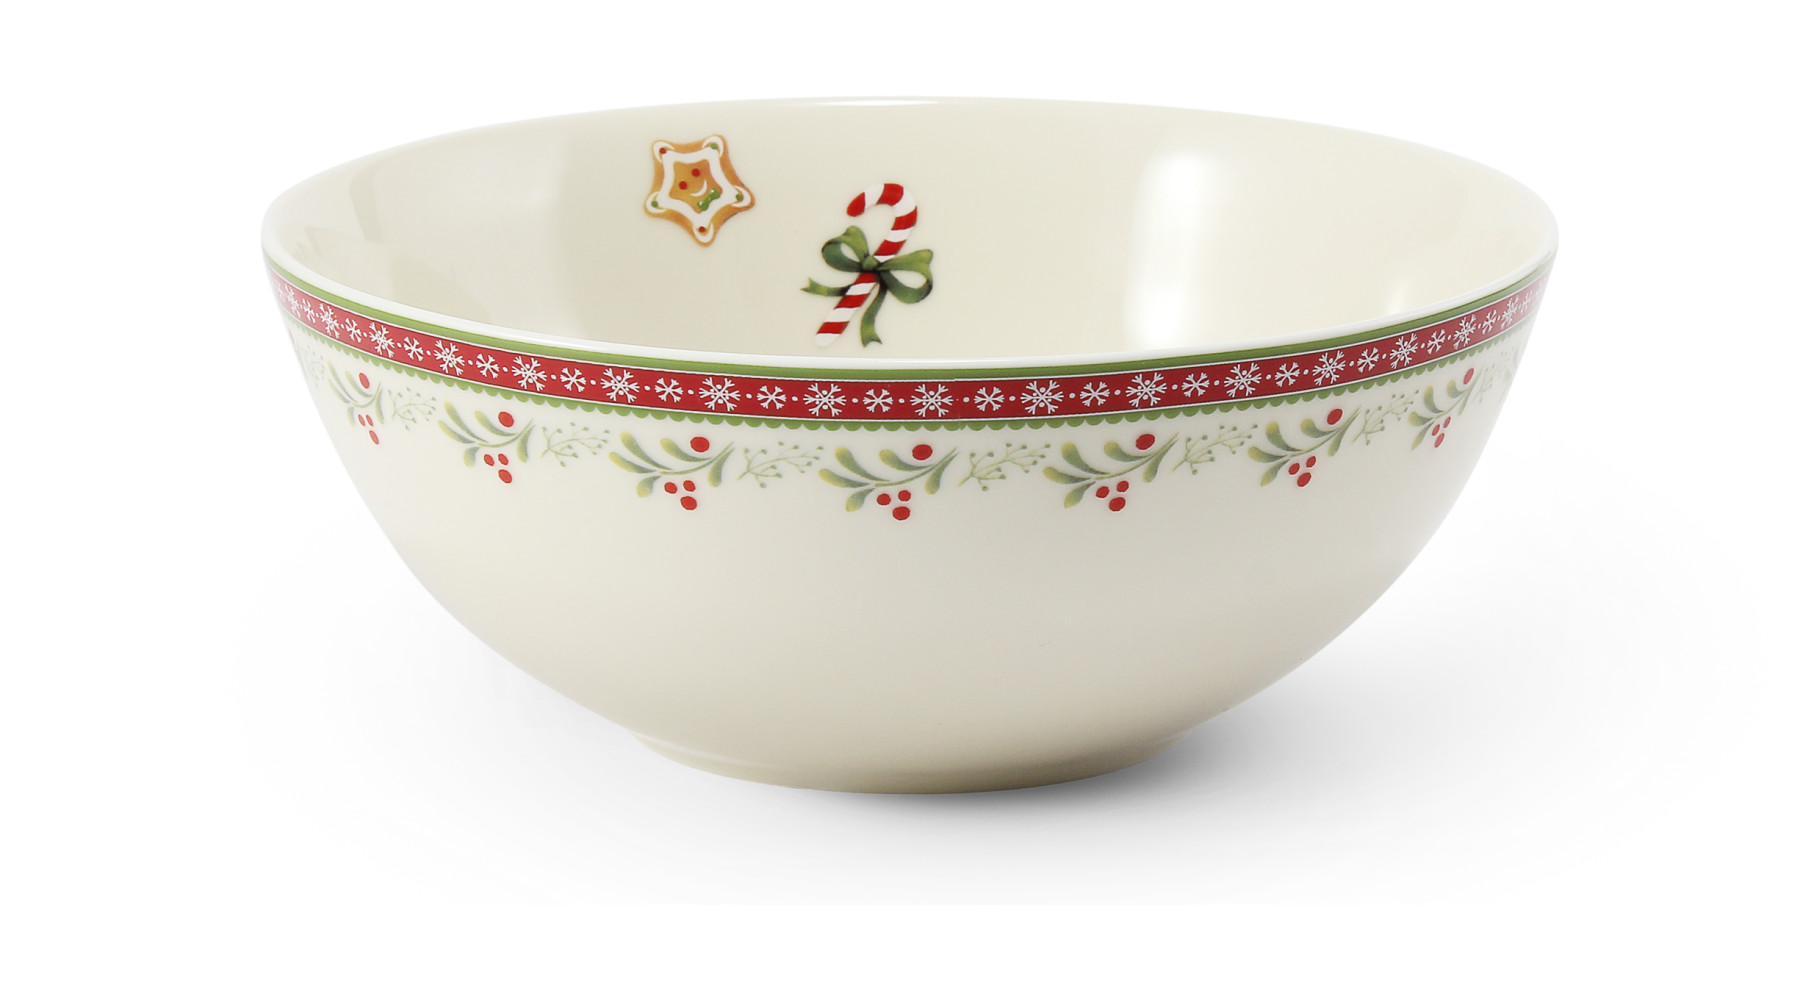 Small bowl 16 cm Gingerbread cookies